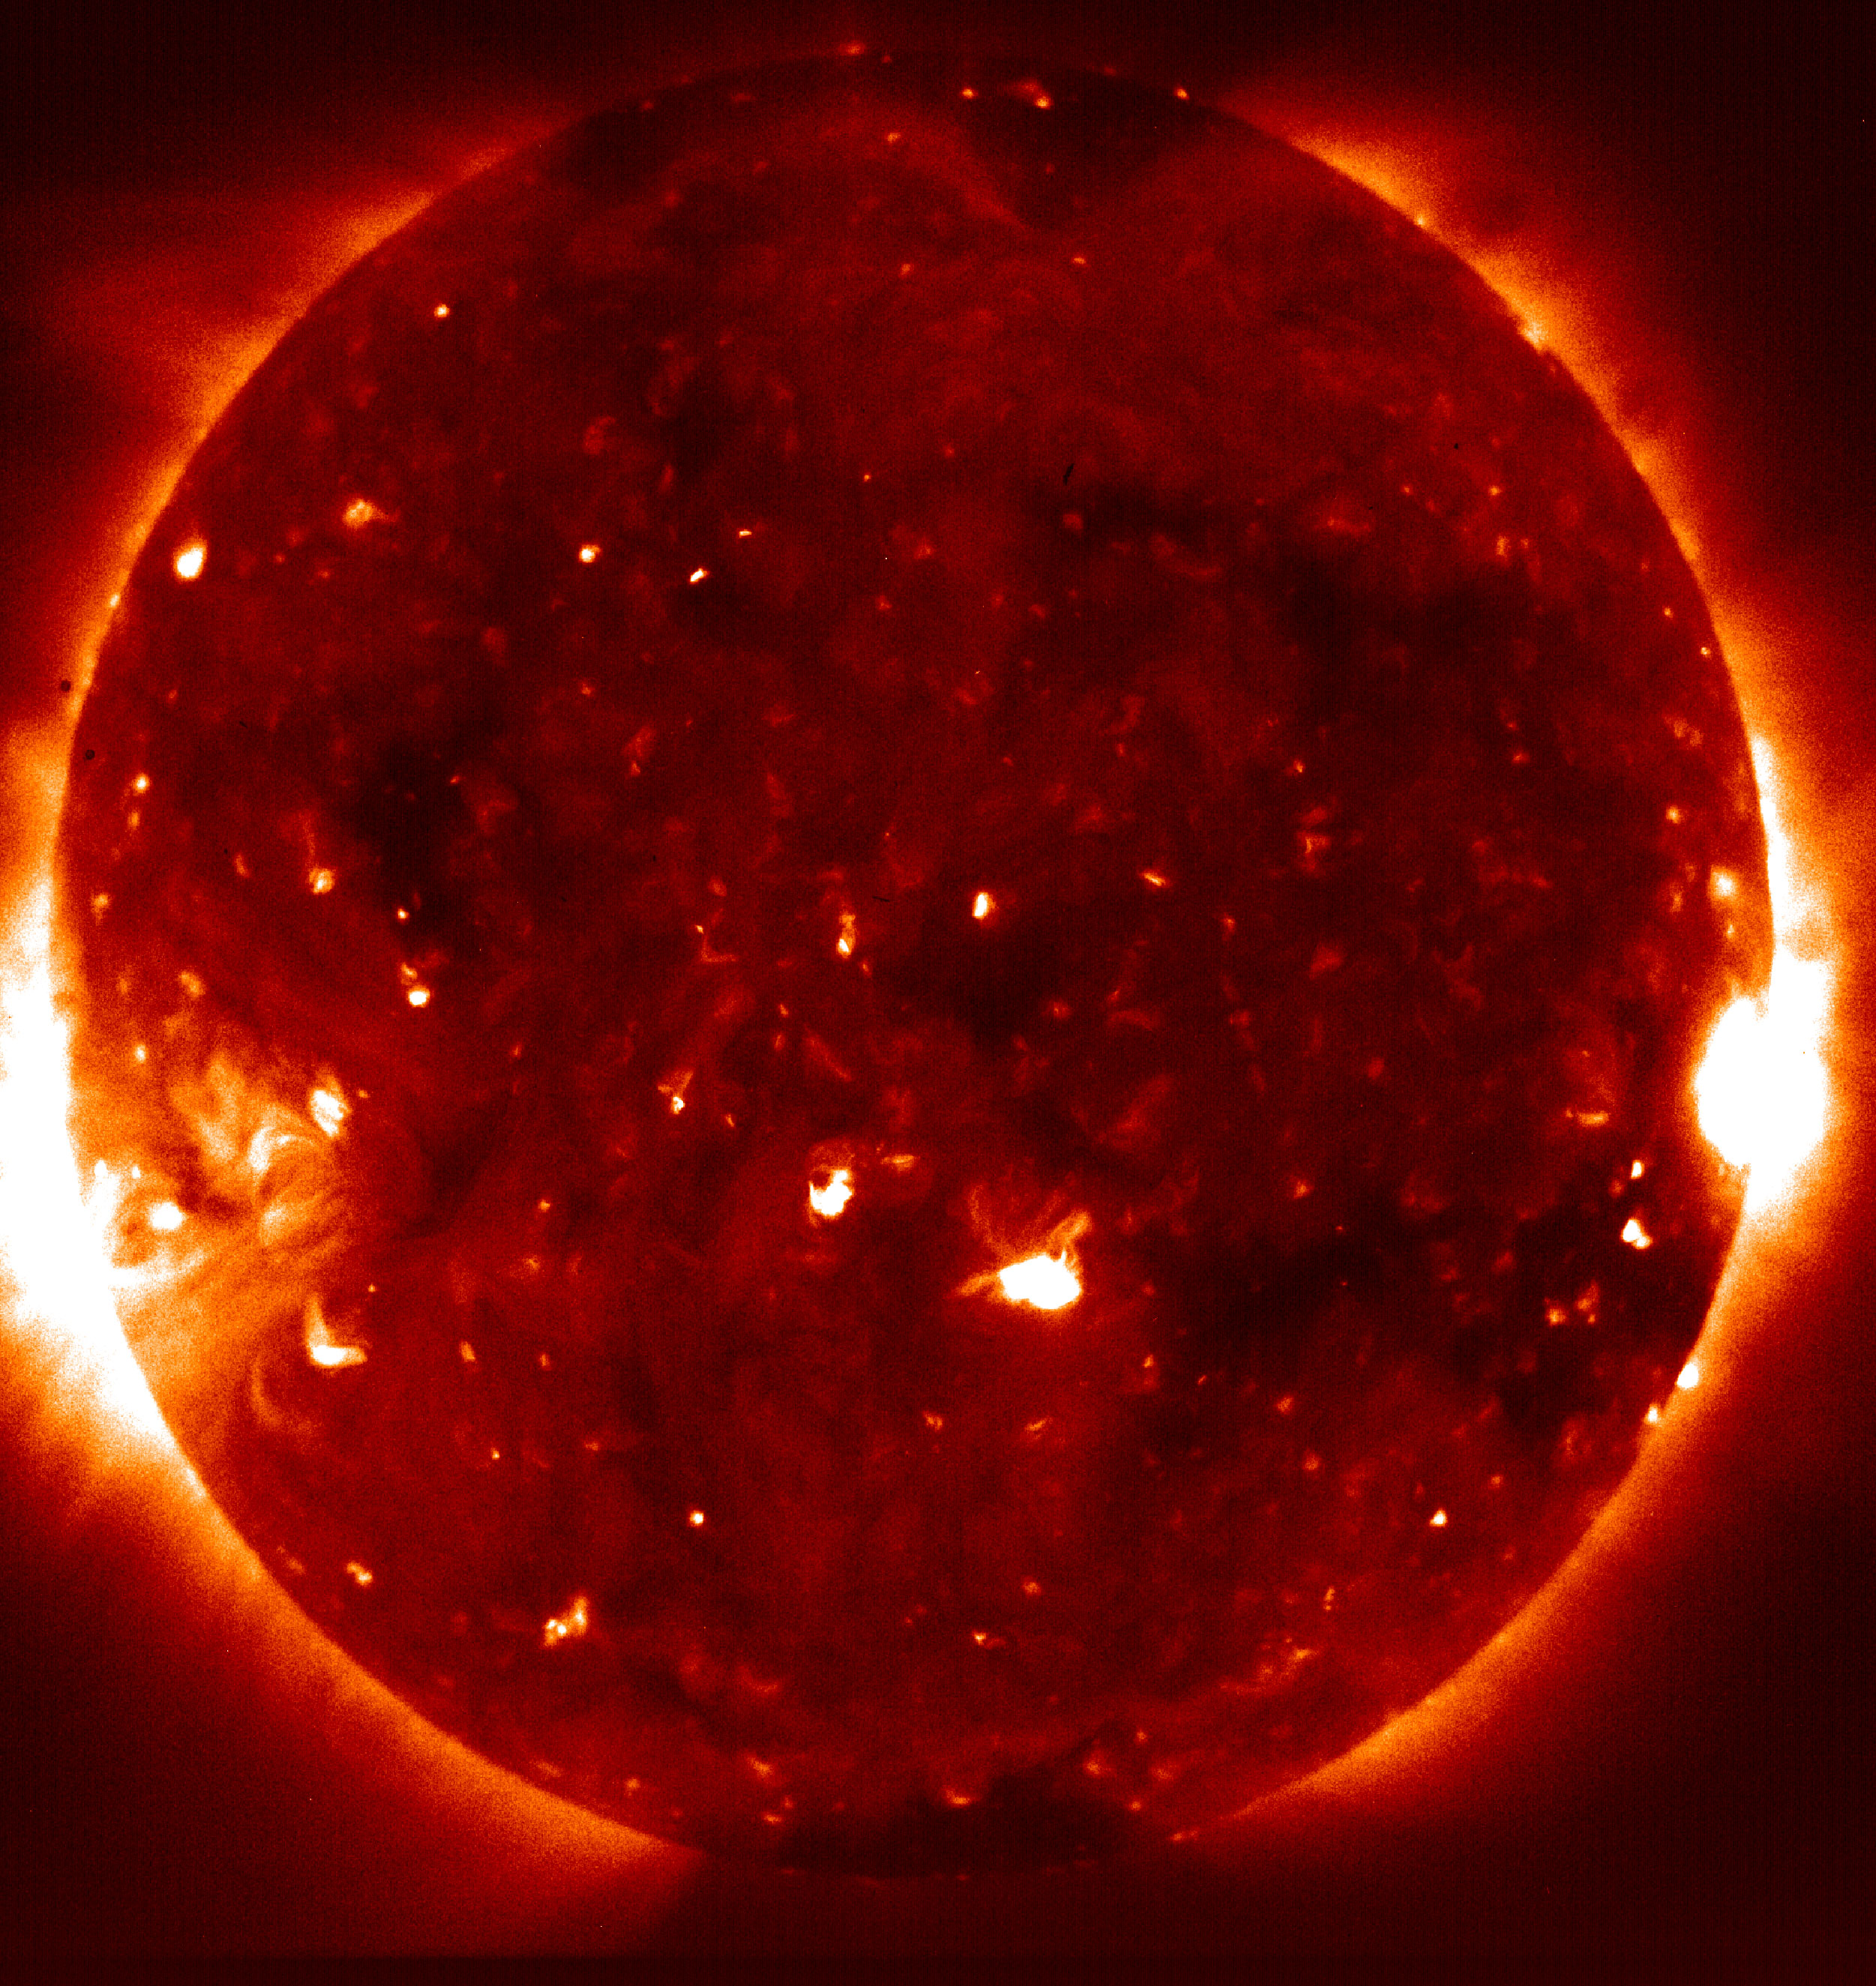 solar atmosphere nasa - photo #31